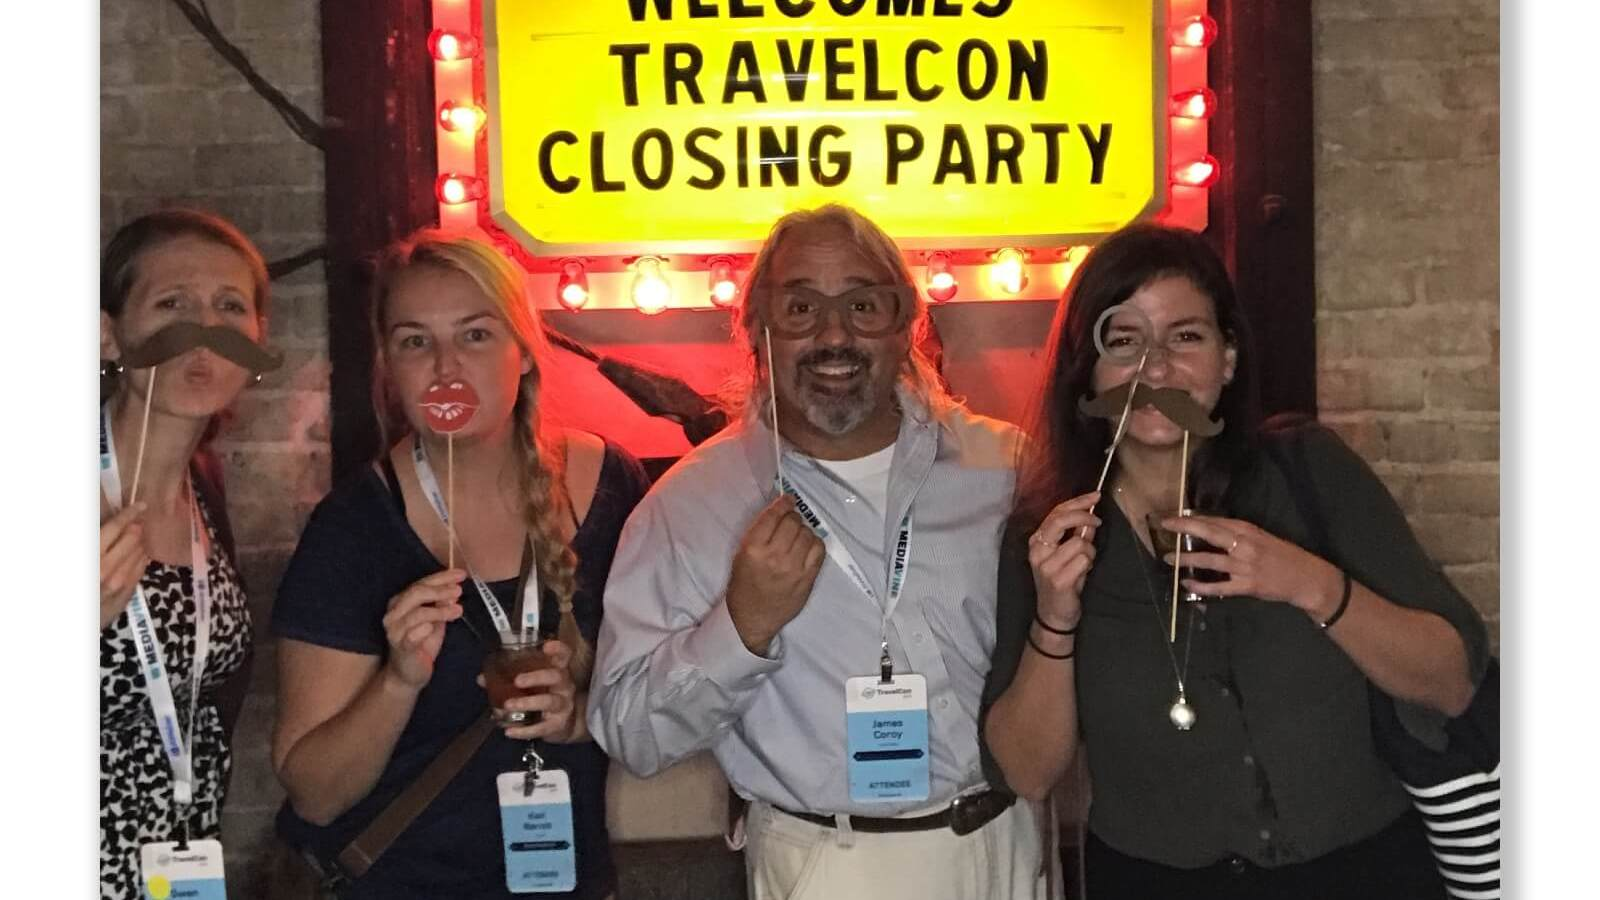 Gwen and friends at TravelCon wrap party